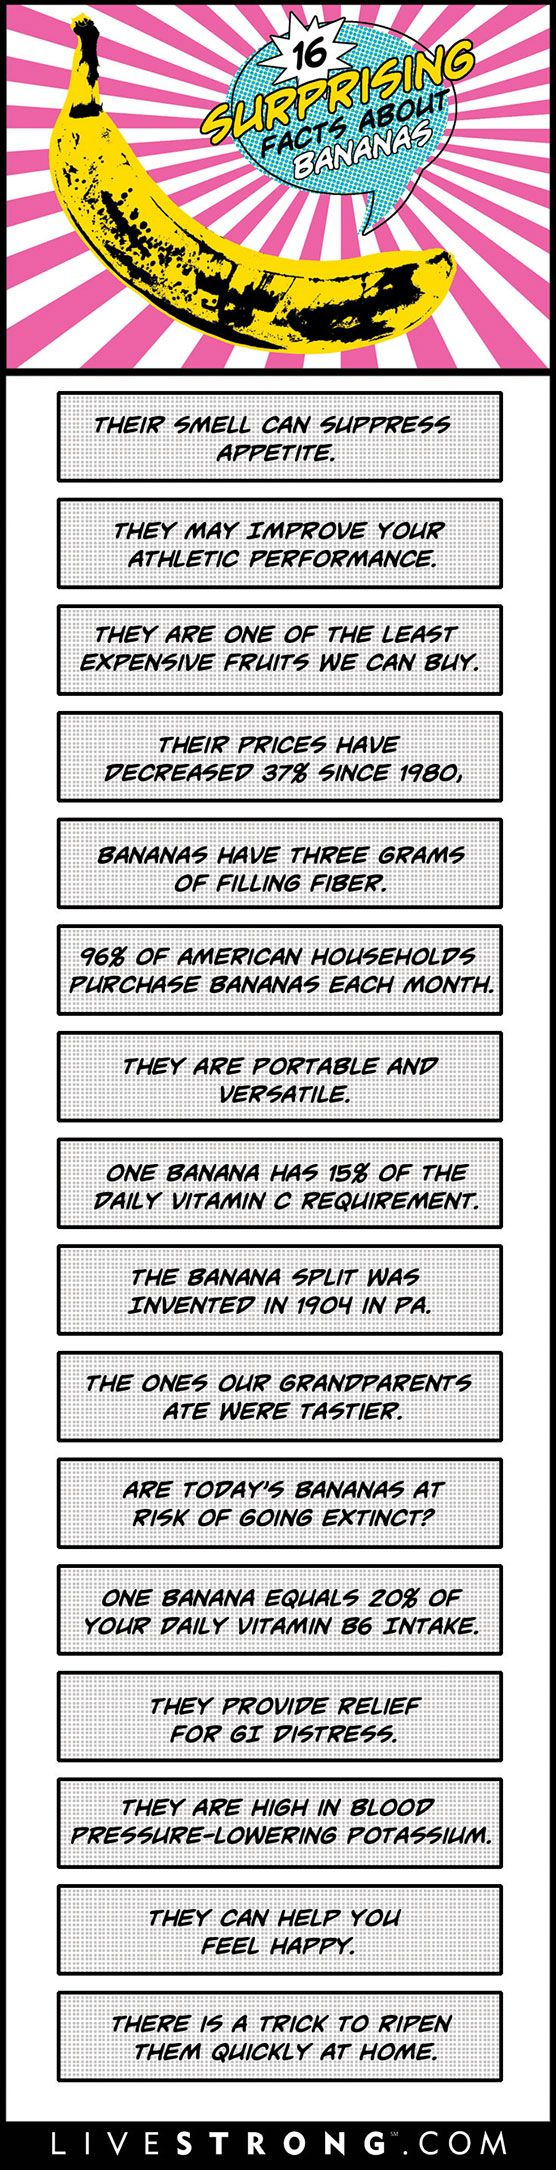 16 Awesome Banana Facts Everyone Should Know (INFOGRAPHIC) http://lvstrng.com/1Ip2ICn